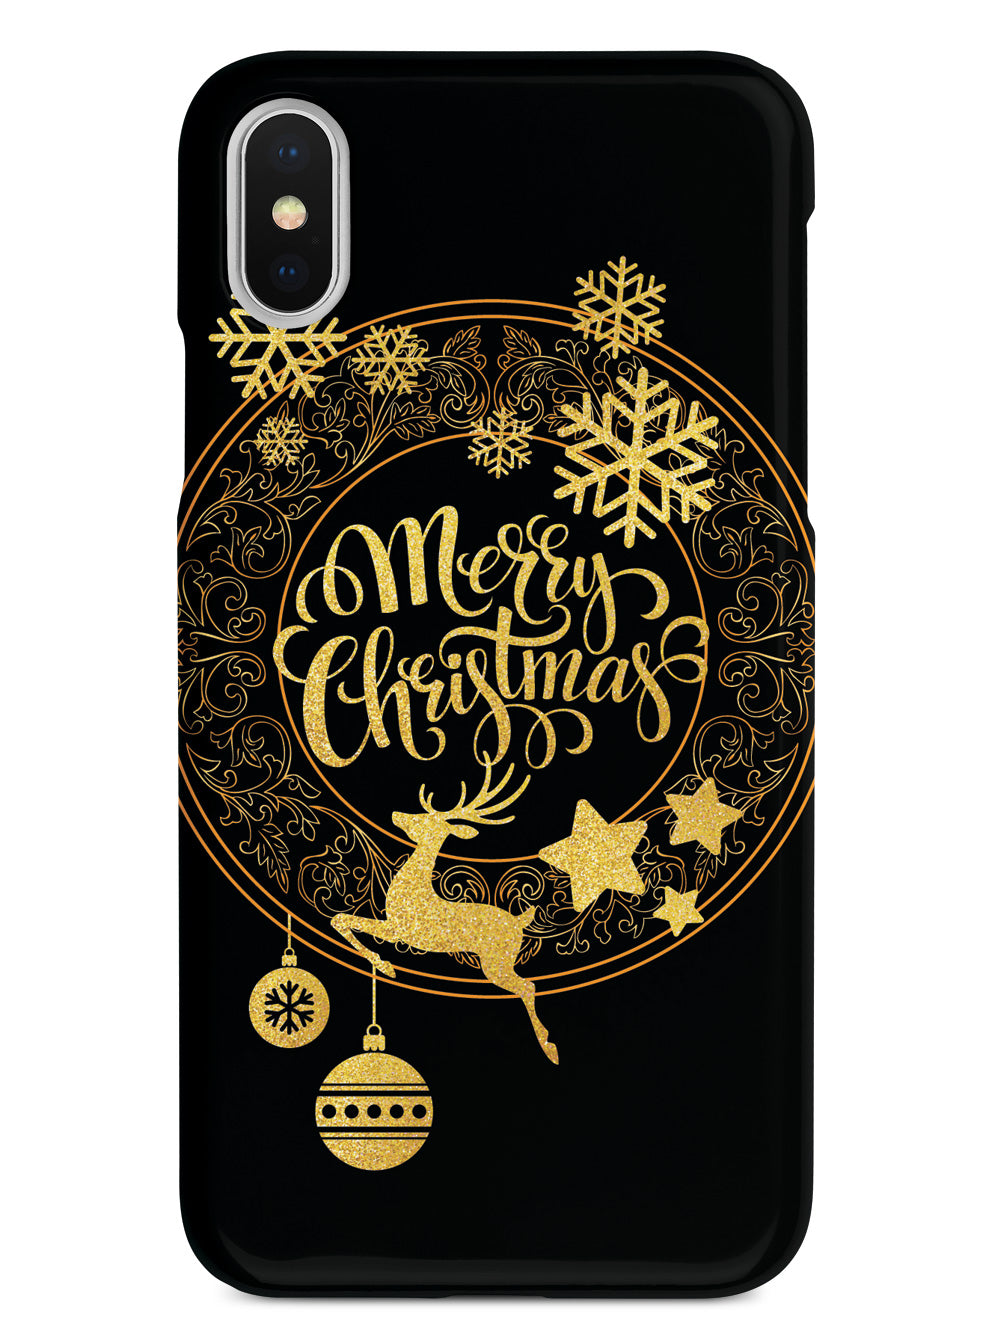 Gold - Merry Christmas Case